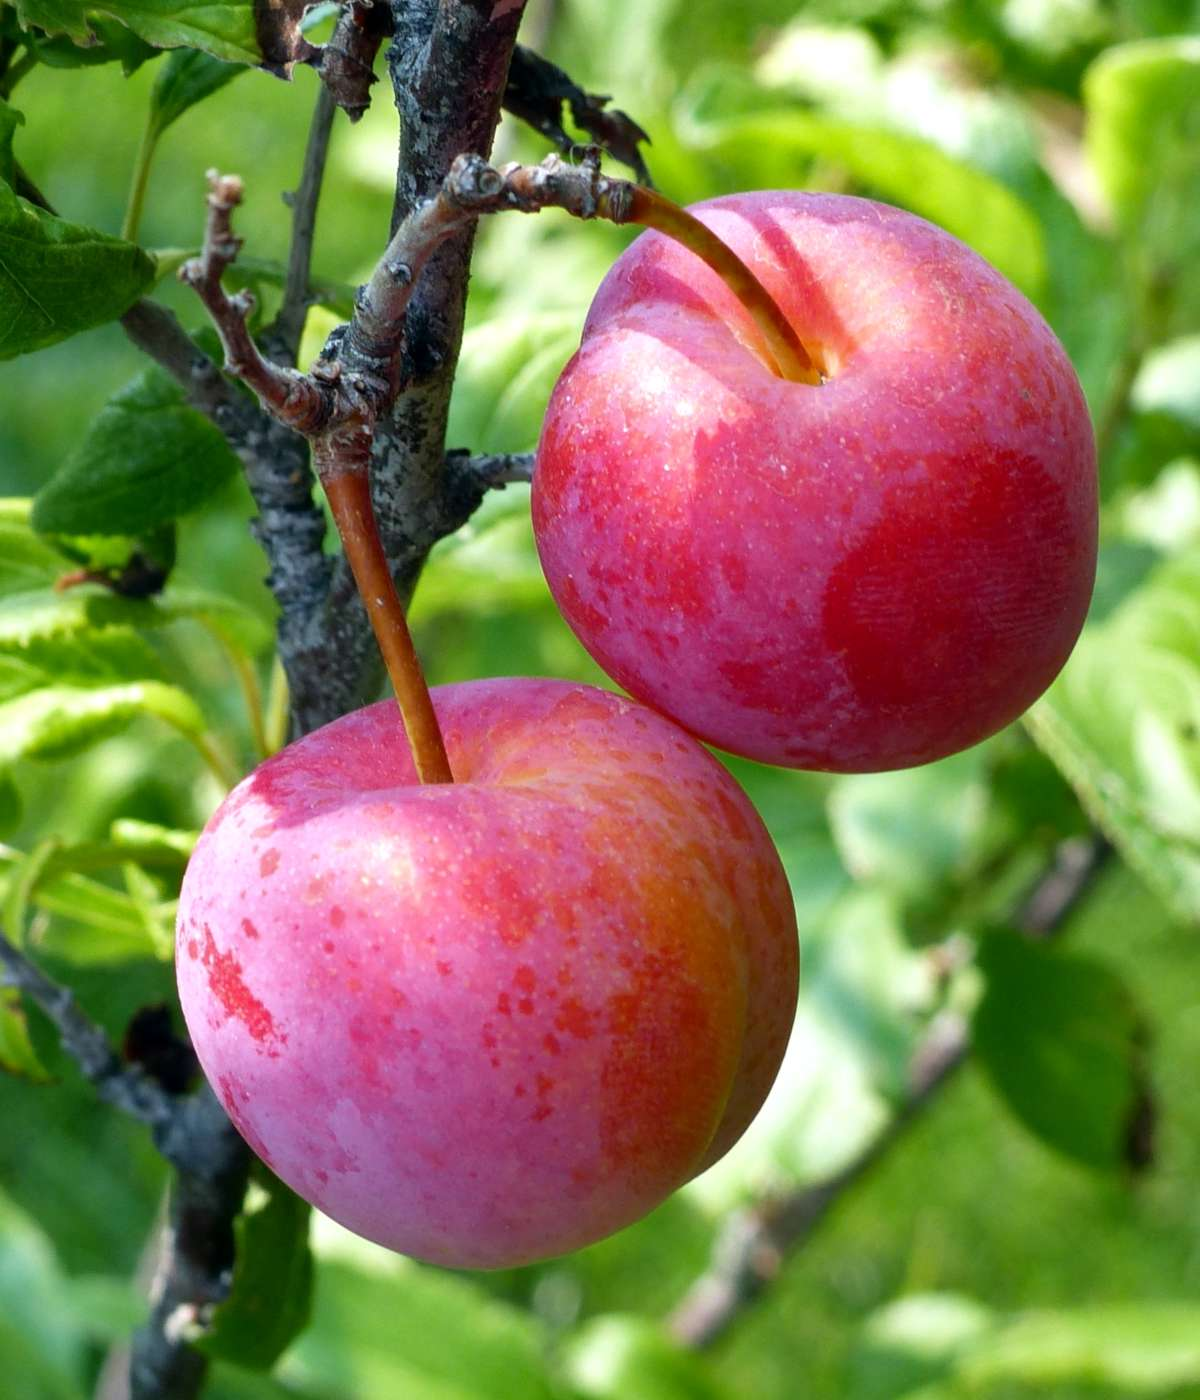 Plums on a plum tree